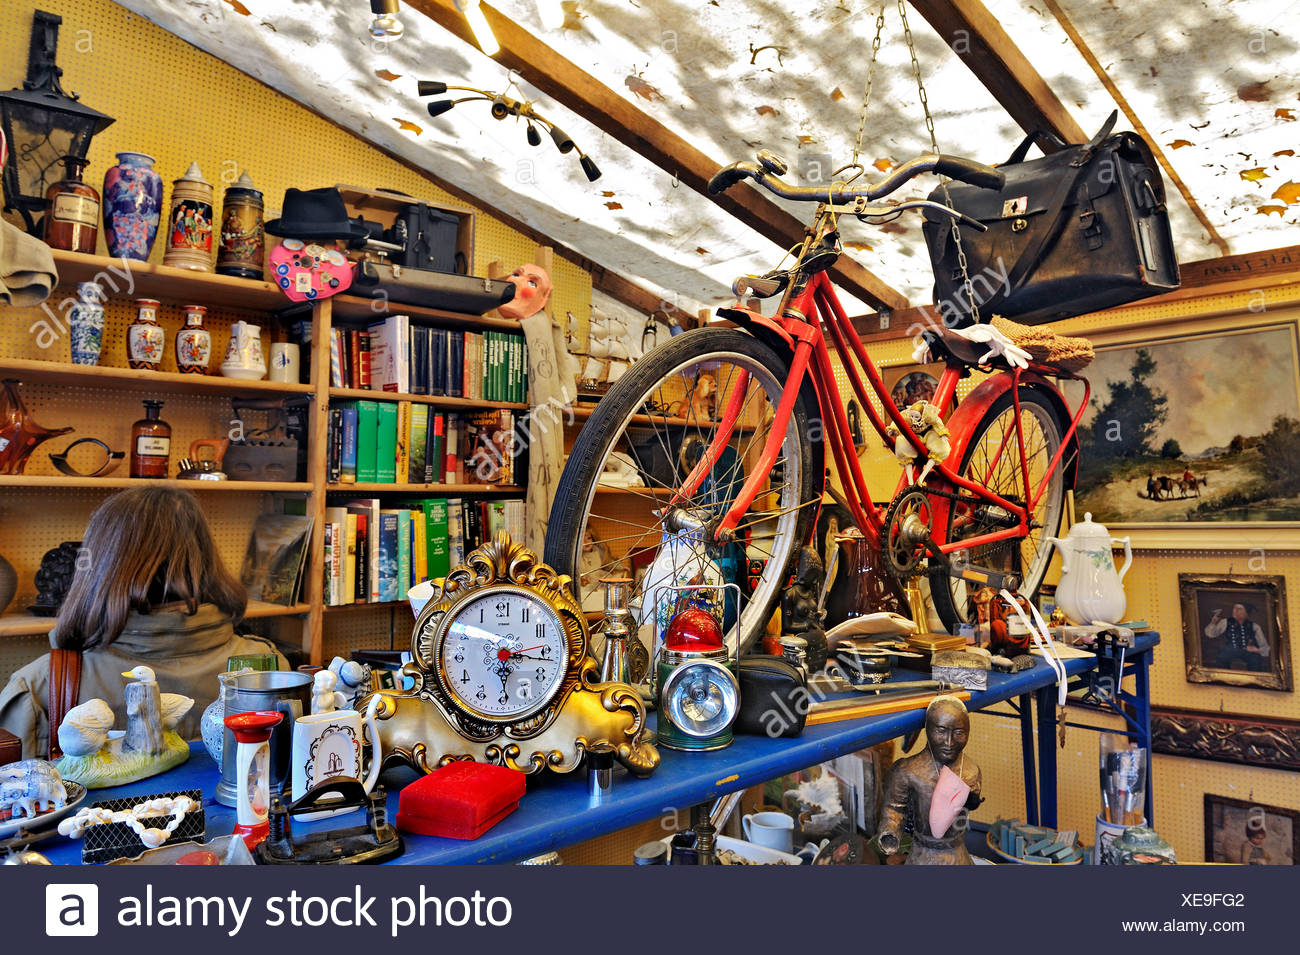 Bicycle and junk, Auer Dult market, Munich, Bavaria, Germany, Europe - Stock Image